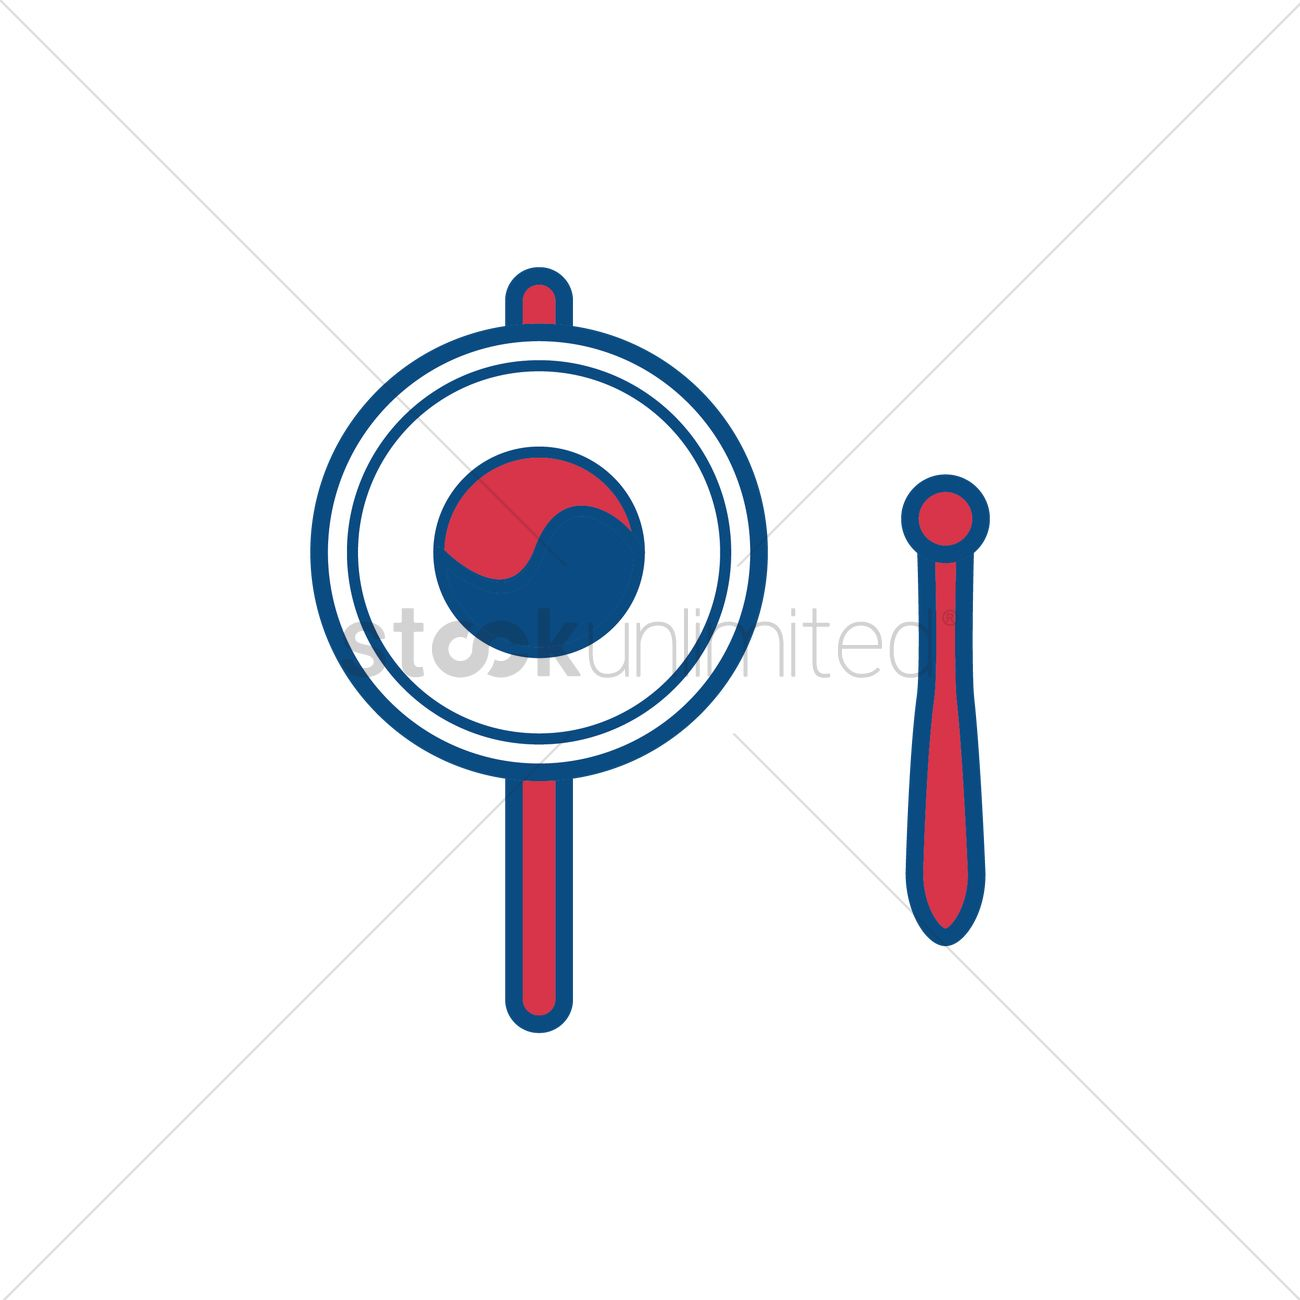 Free Traditional Korean Hand Drum Vector Graphic